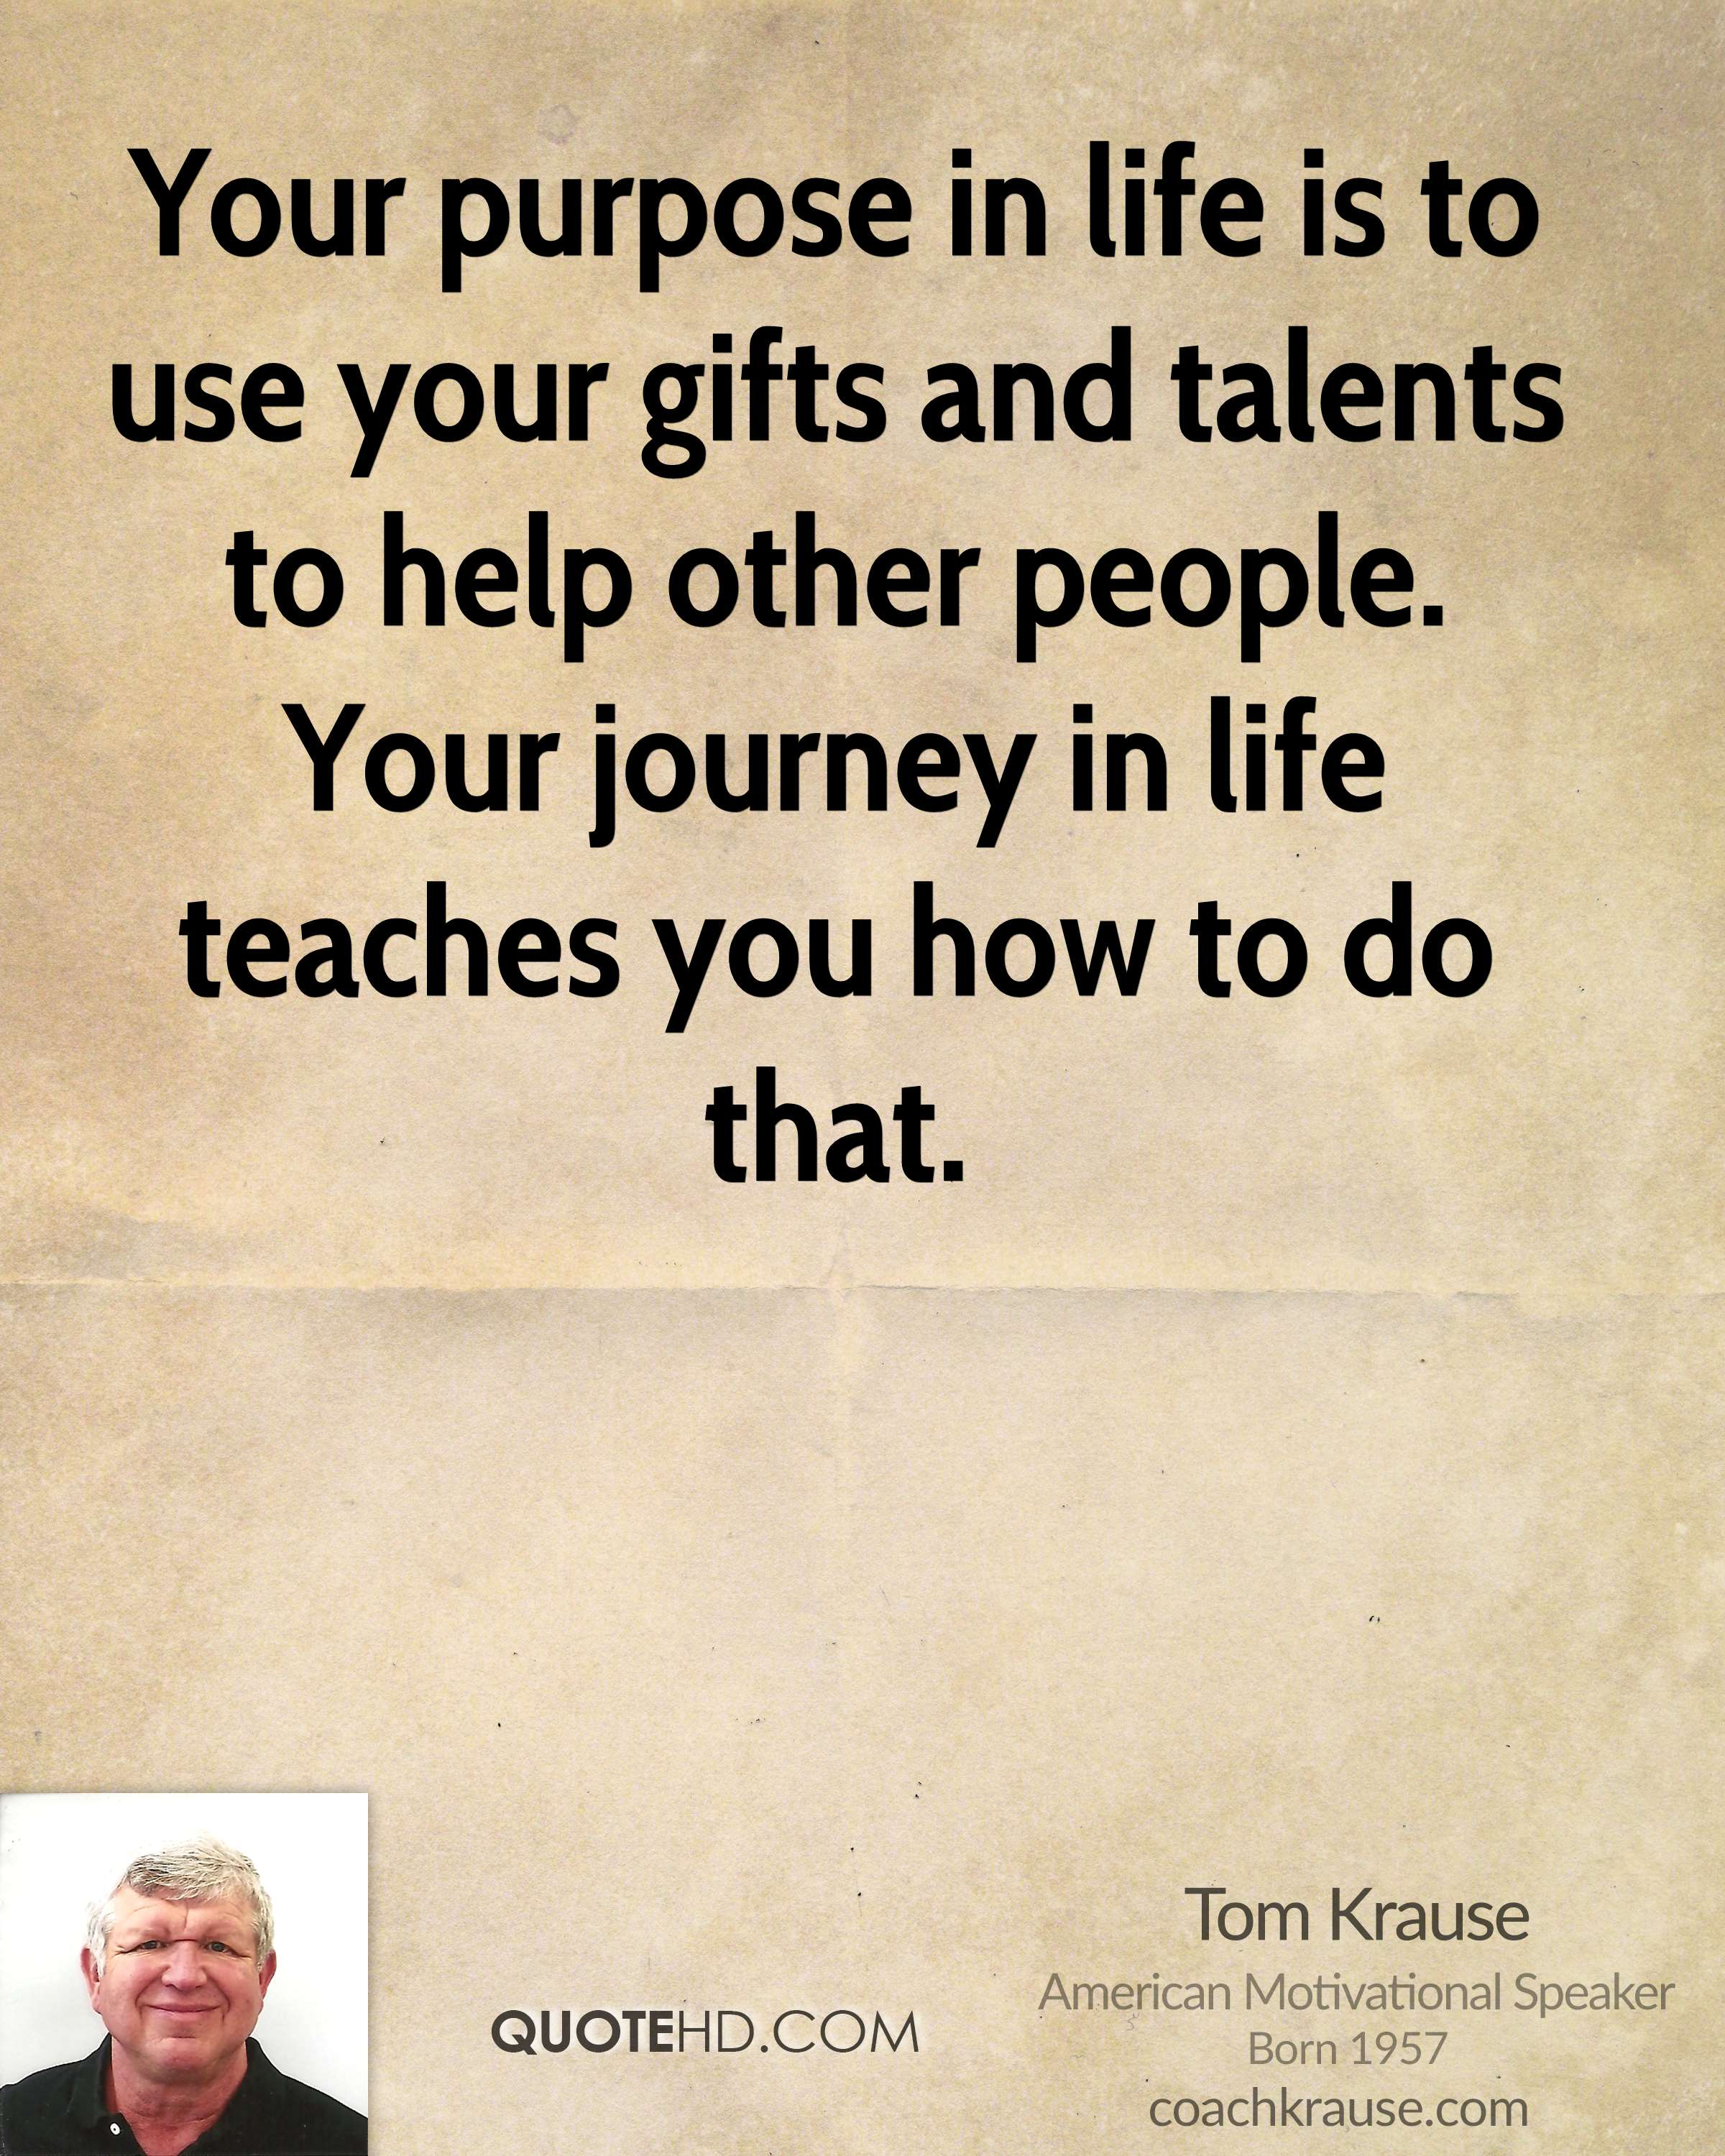 Your purpose in life is to use your gifts and talents to help other people. Your journey in life teaches you how to do that.